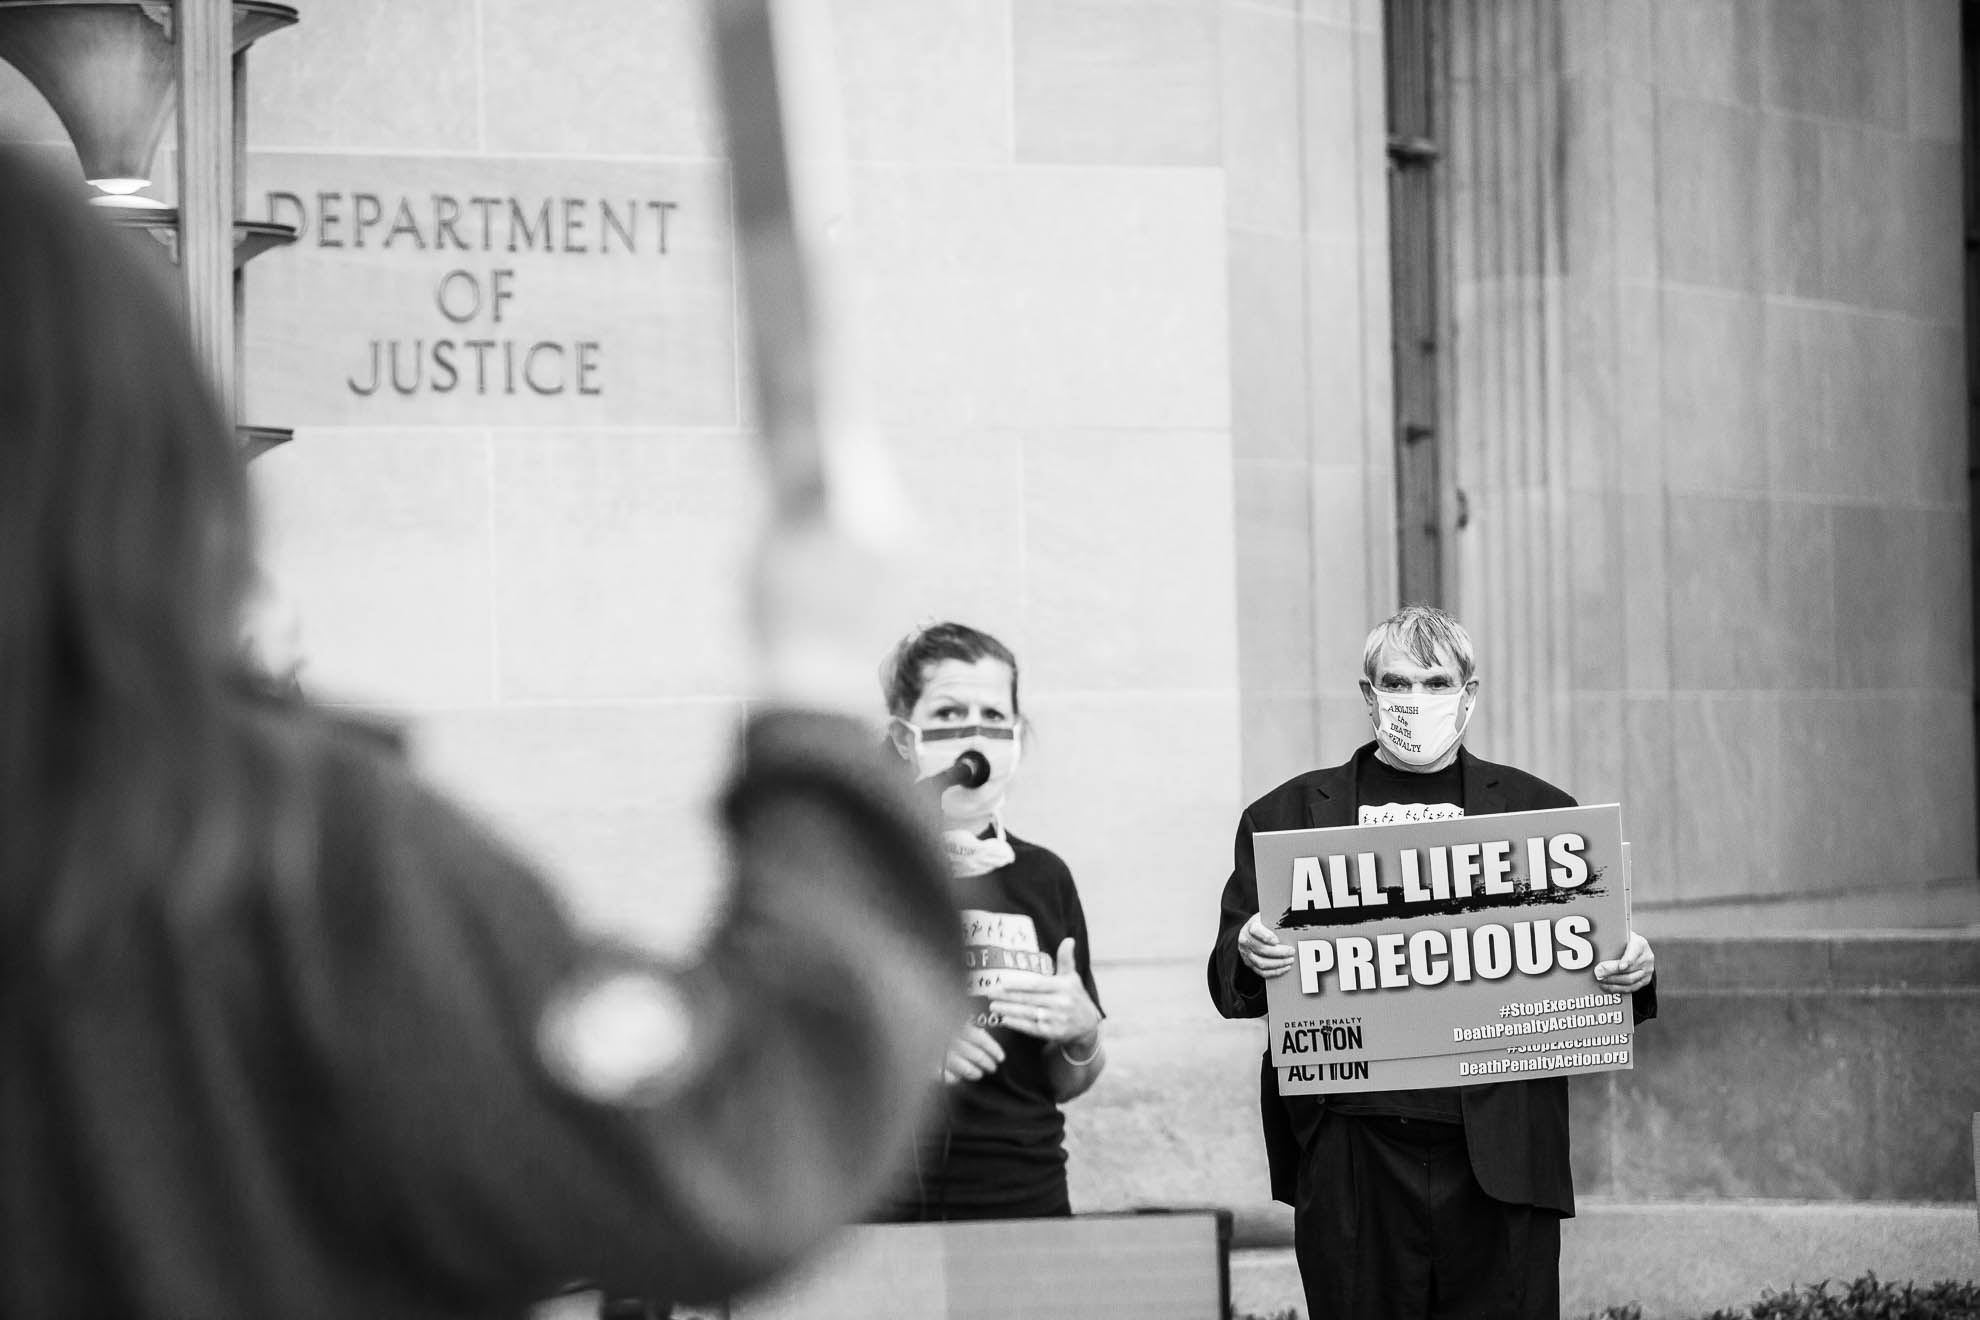 death penalty, photography, photos, execution, prison, documentary, federal, trump, department of justice, washington, dc,, protest, vigil